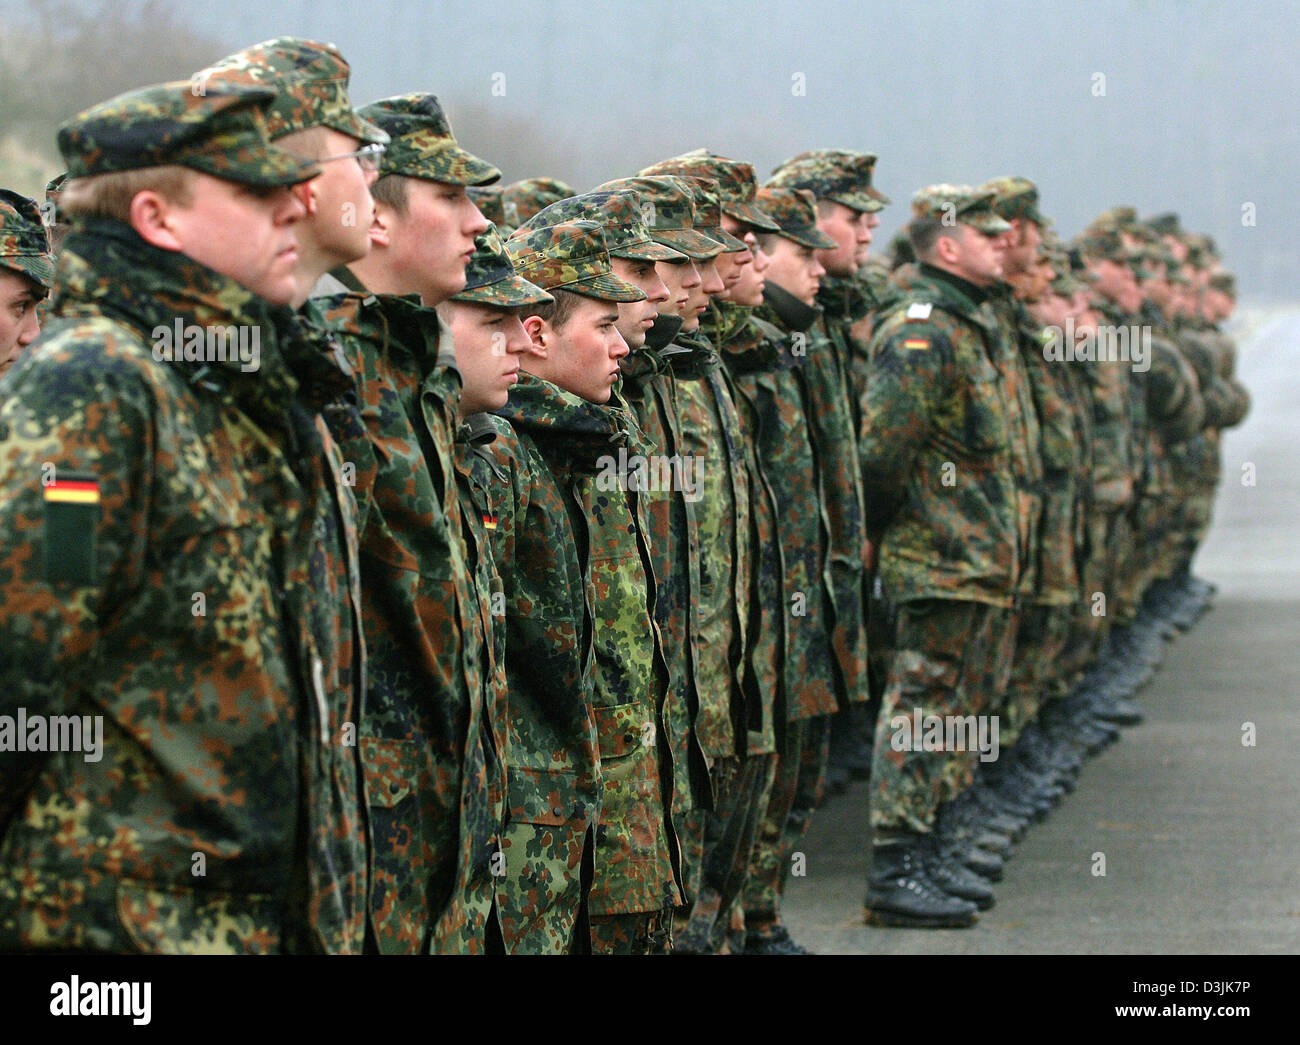 (dpa) - Recruits and instructors of the German Bundeswehr form up at a training area in Ahlen, Germany, 18 March - Stock Image